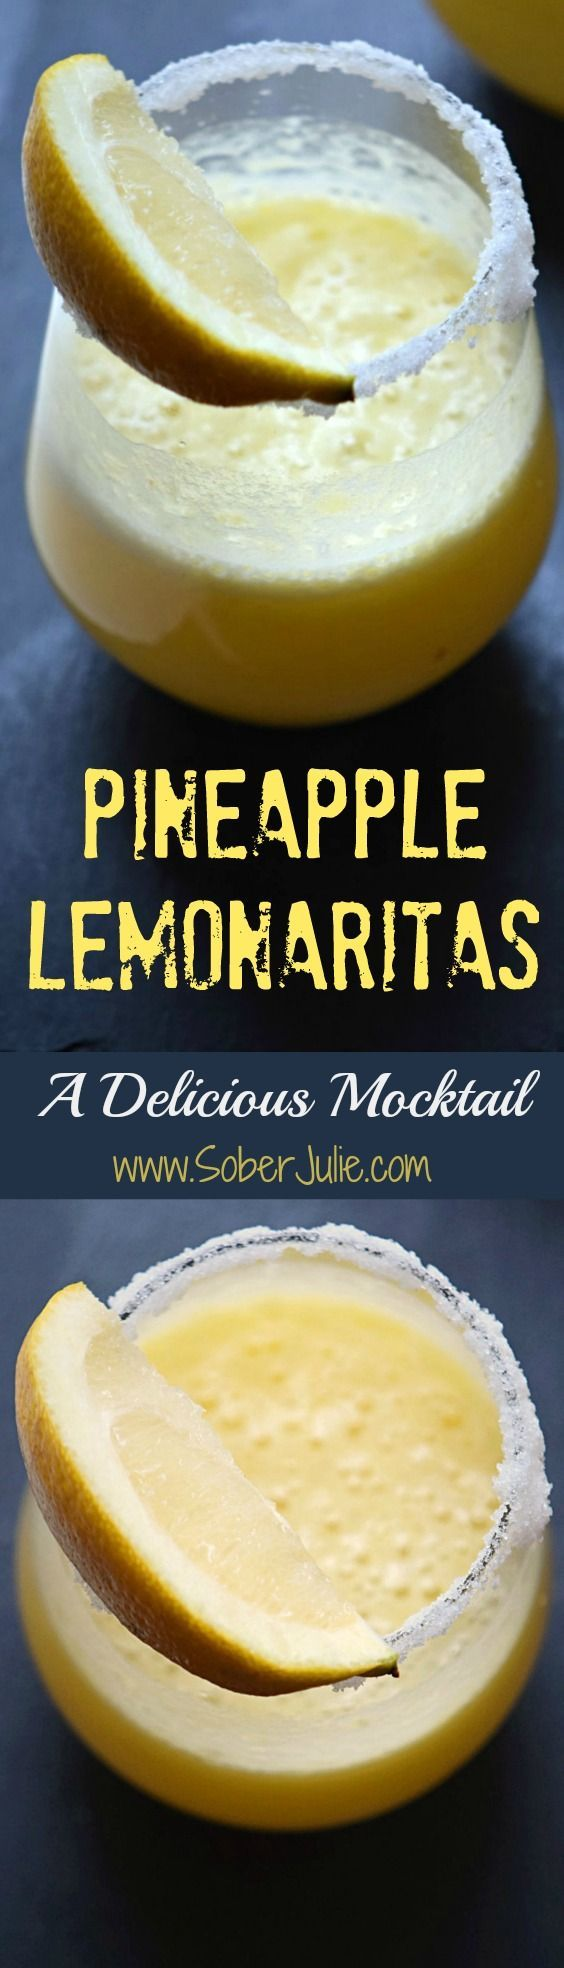 Pineapple Lemonarita - A Non-Alcoholic Drink Recipe - Sober Julie